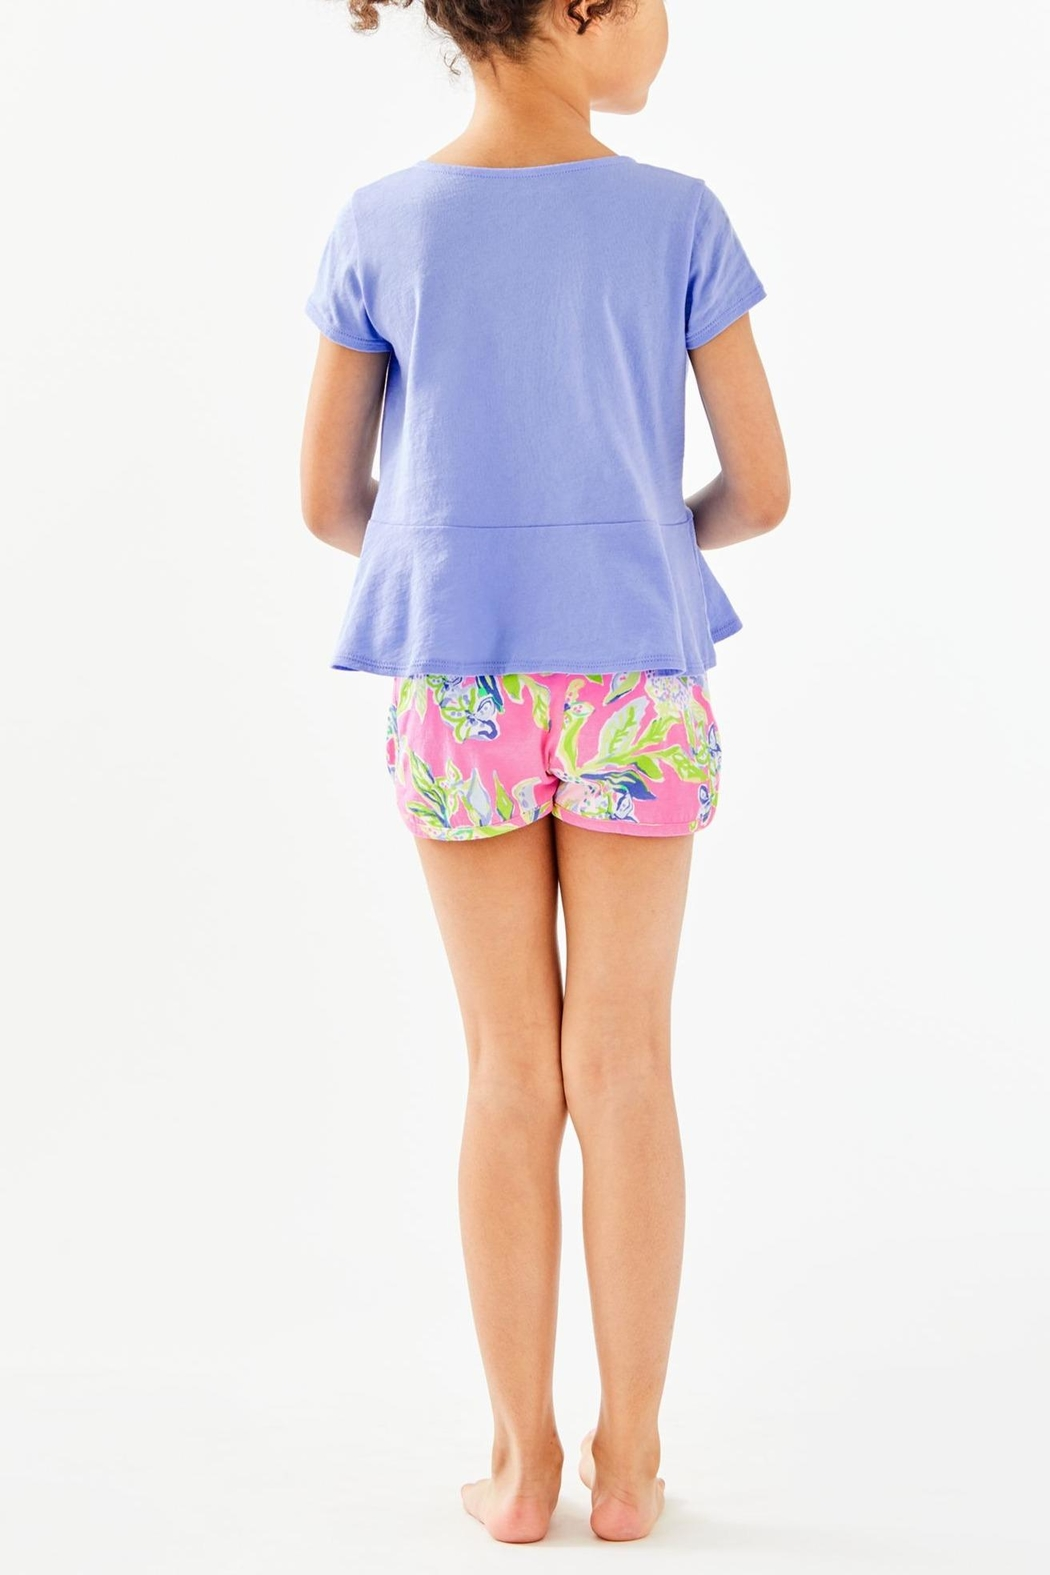 Lilly Pulitzer Girls Sondra Peplum-Top - Front Full Image